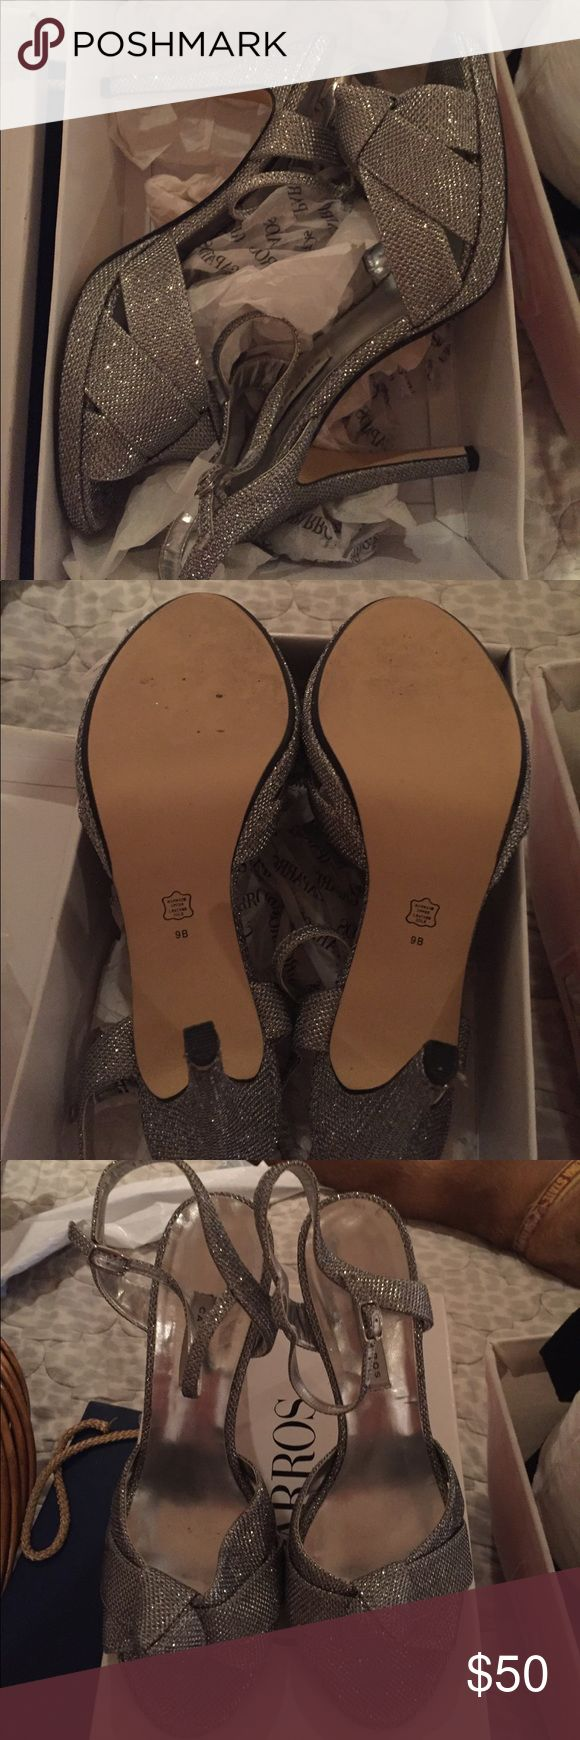 Silver Dress Shoes Worn for three hours - almost brand new and comes with box. silver sparkly dress shoes. About a 3 inch heel. Smoke free home. Barely any wear. Been kept in box. Size 9. Caparros Shoes Heels